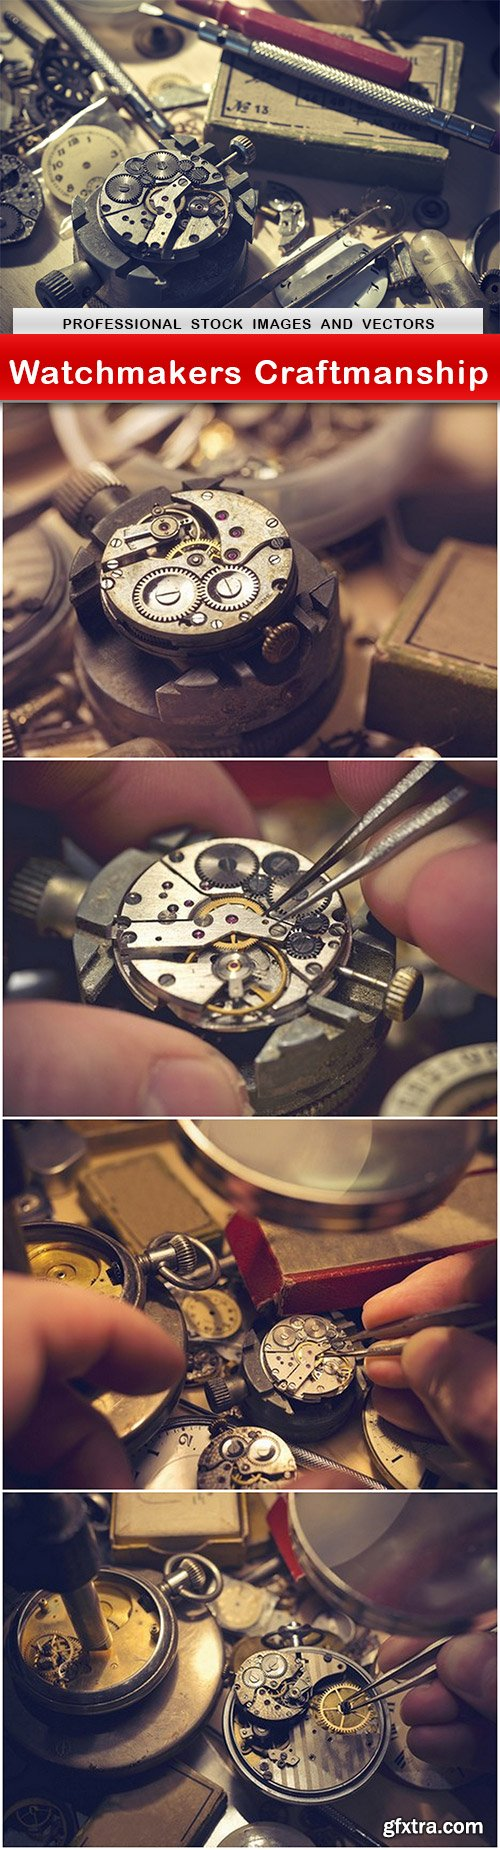 Watchmakers Craftmanship - 5 UHQ JPEG